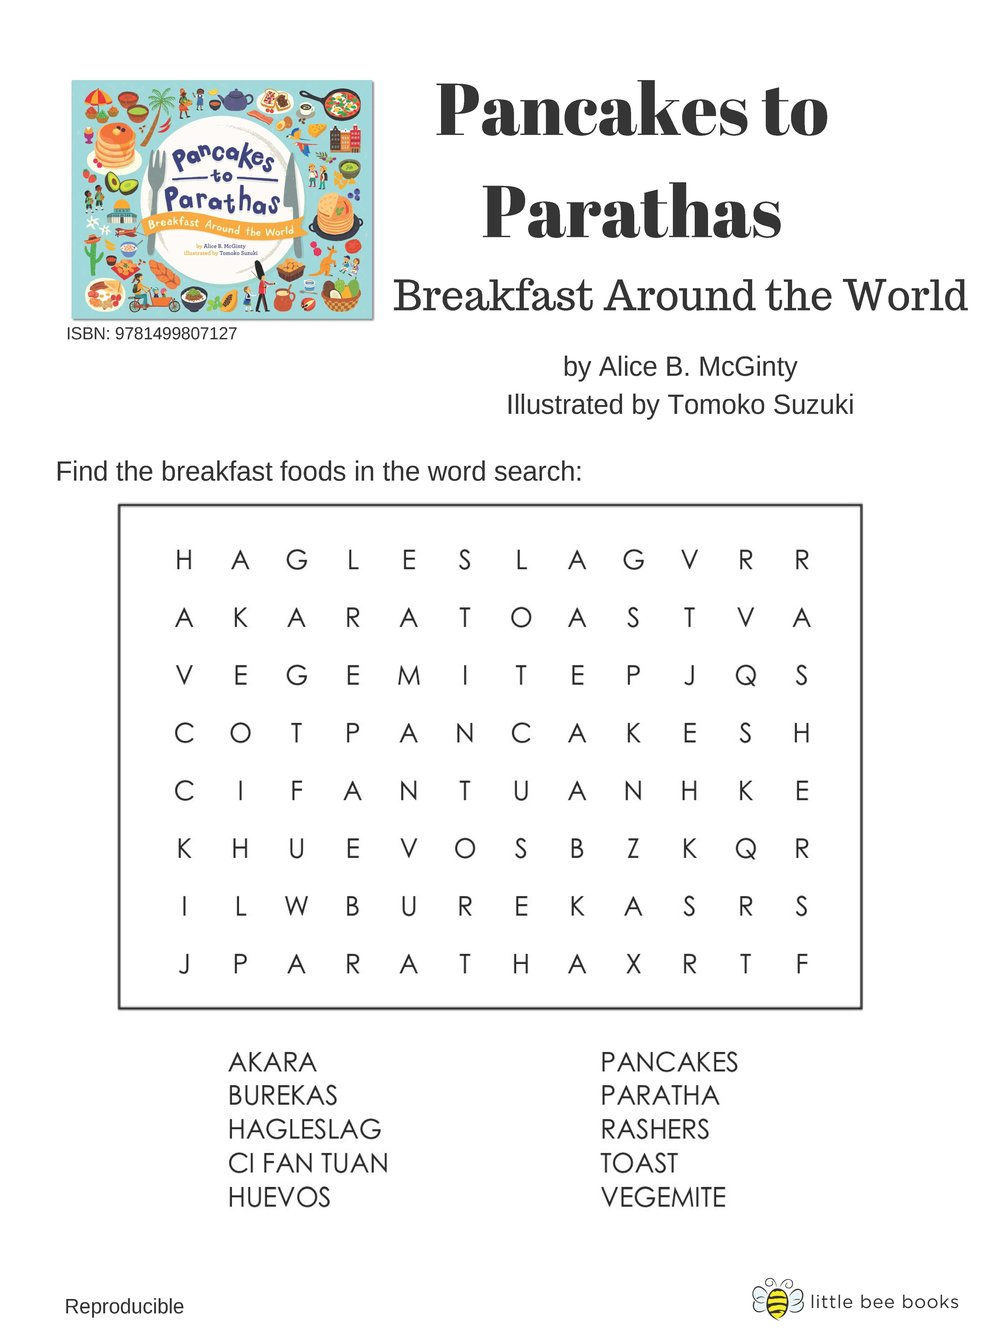 Pancakes to Parathas: Breakfast Around the World - Activities such as word-search, drawing, and matching game!